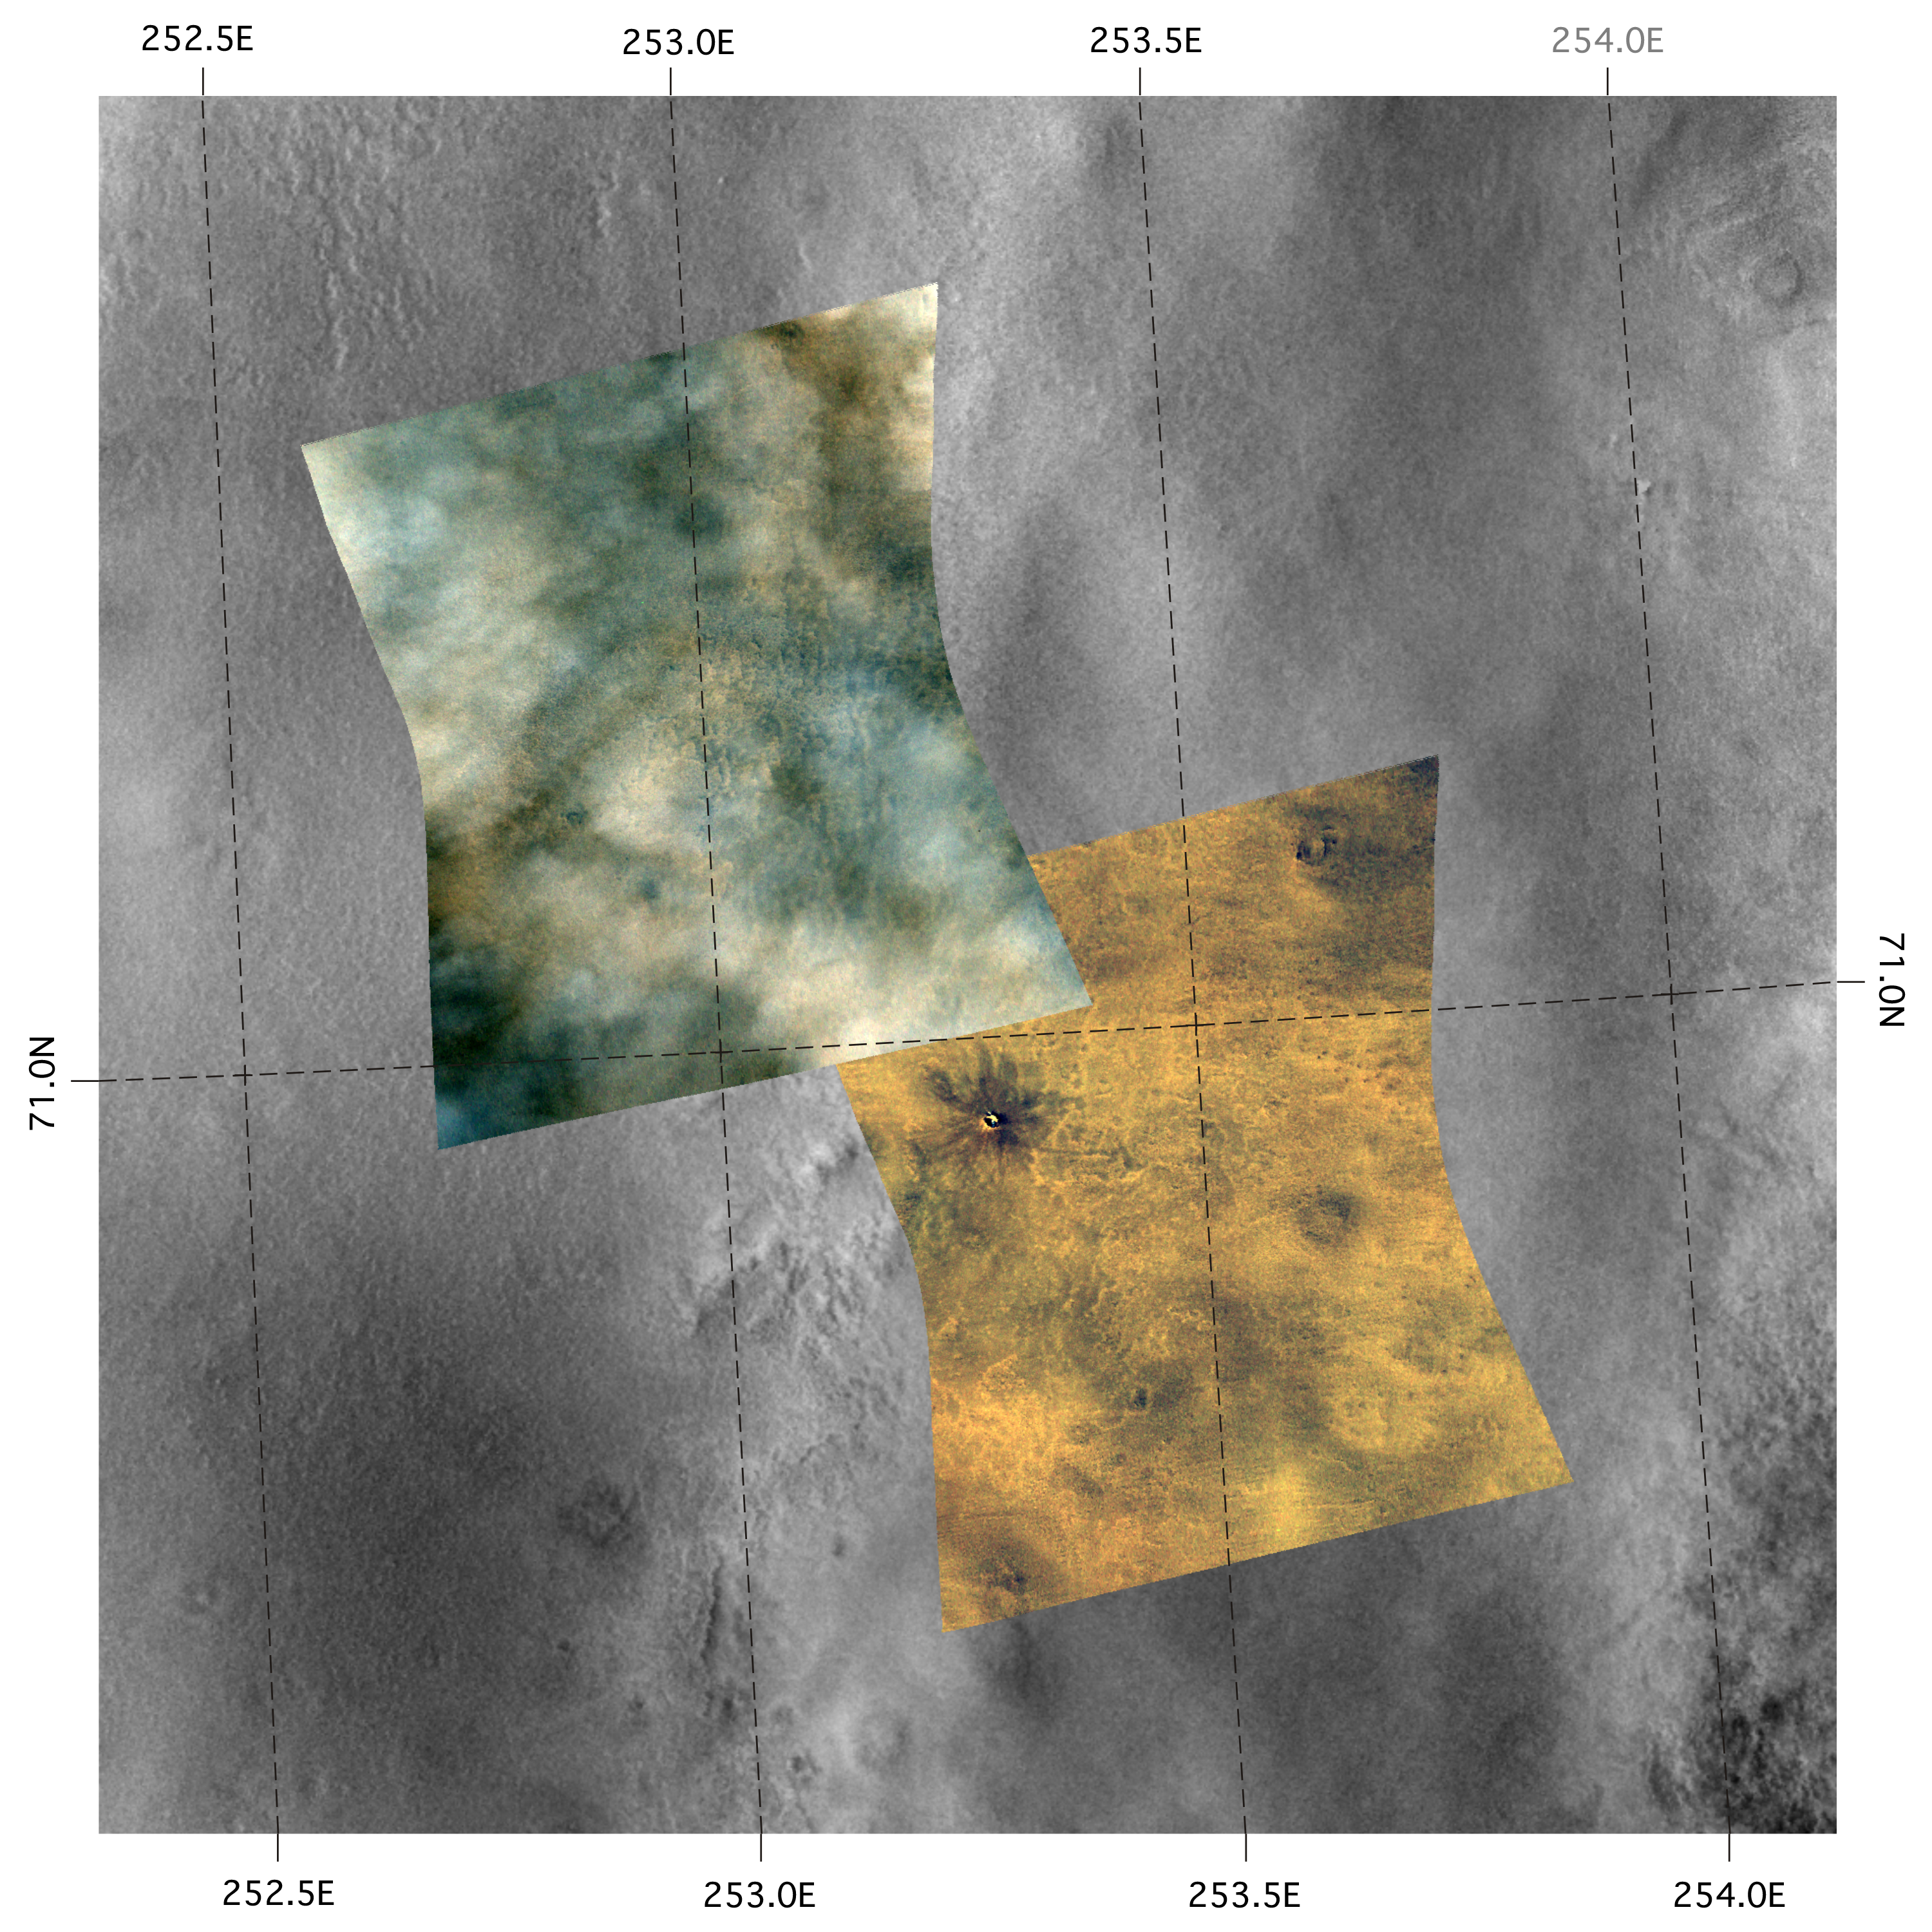 NASA Mars Reconnaissance Orbiter CRISM Imagery: A Change ...